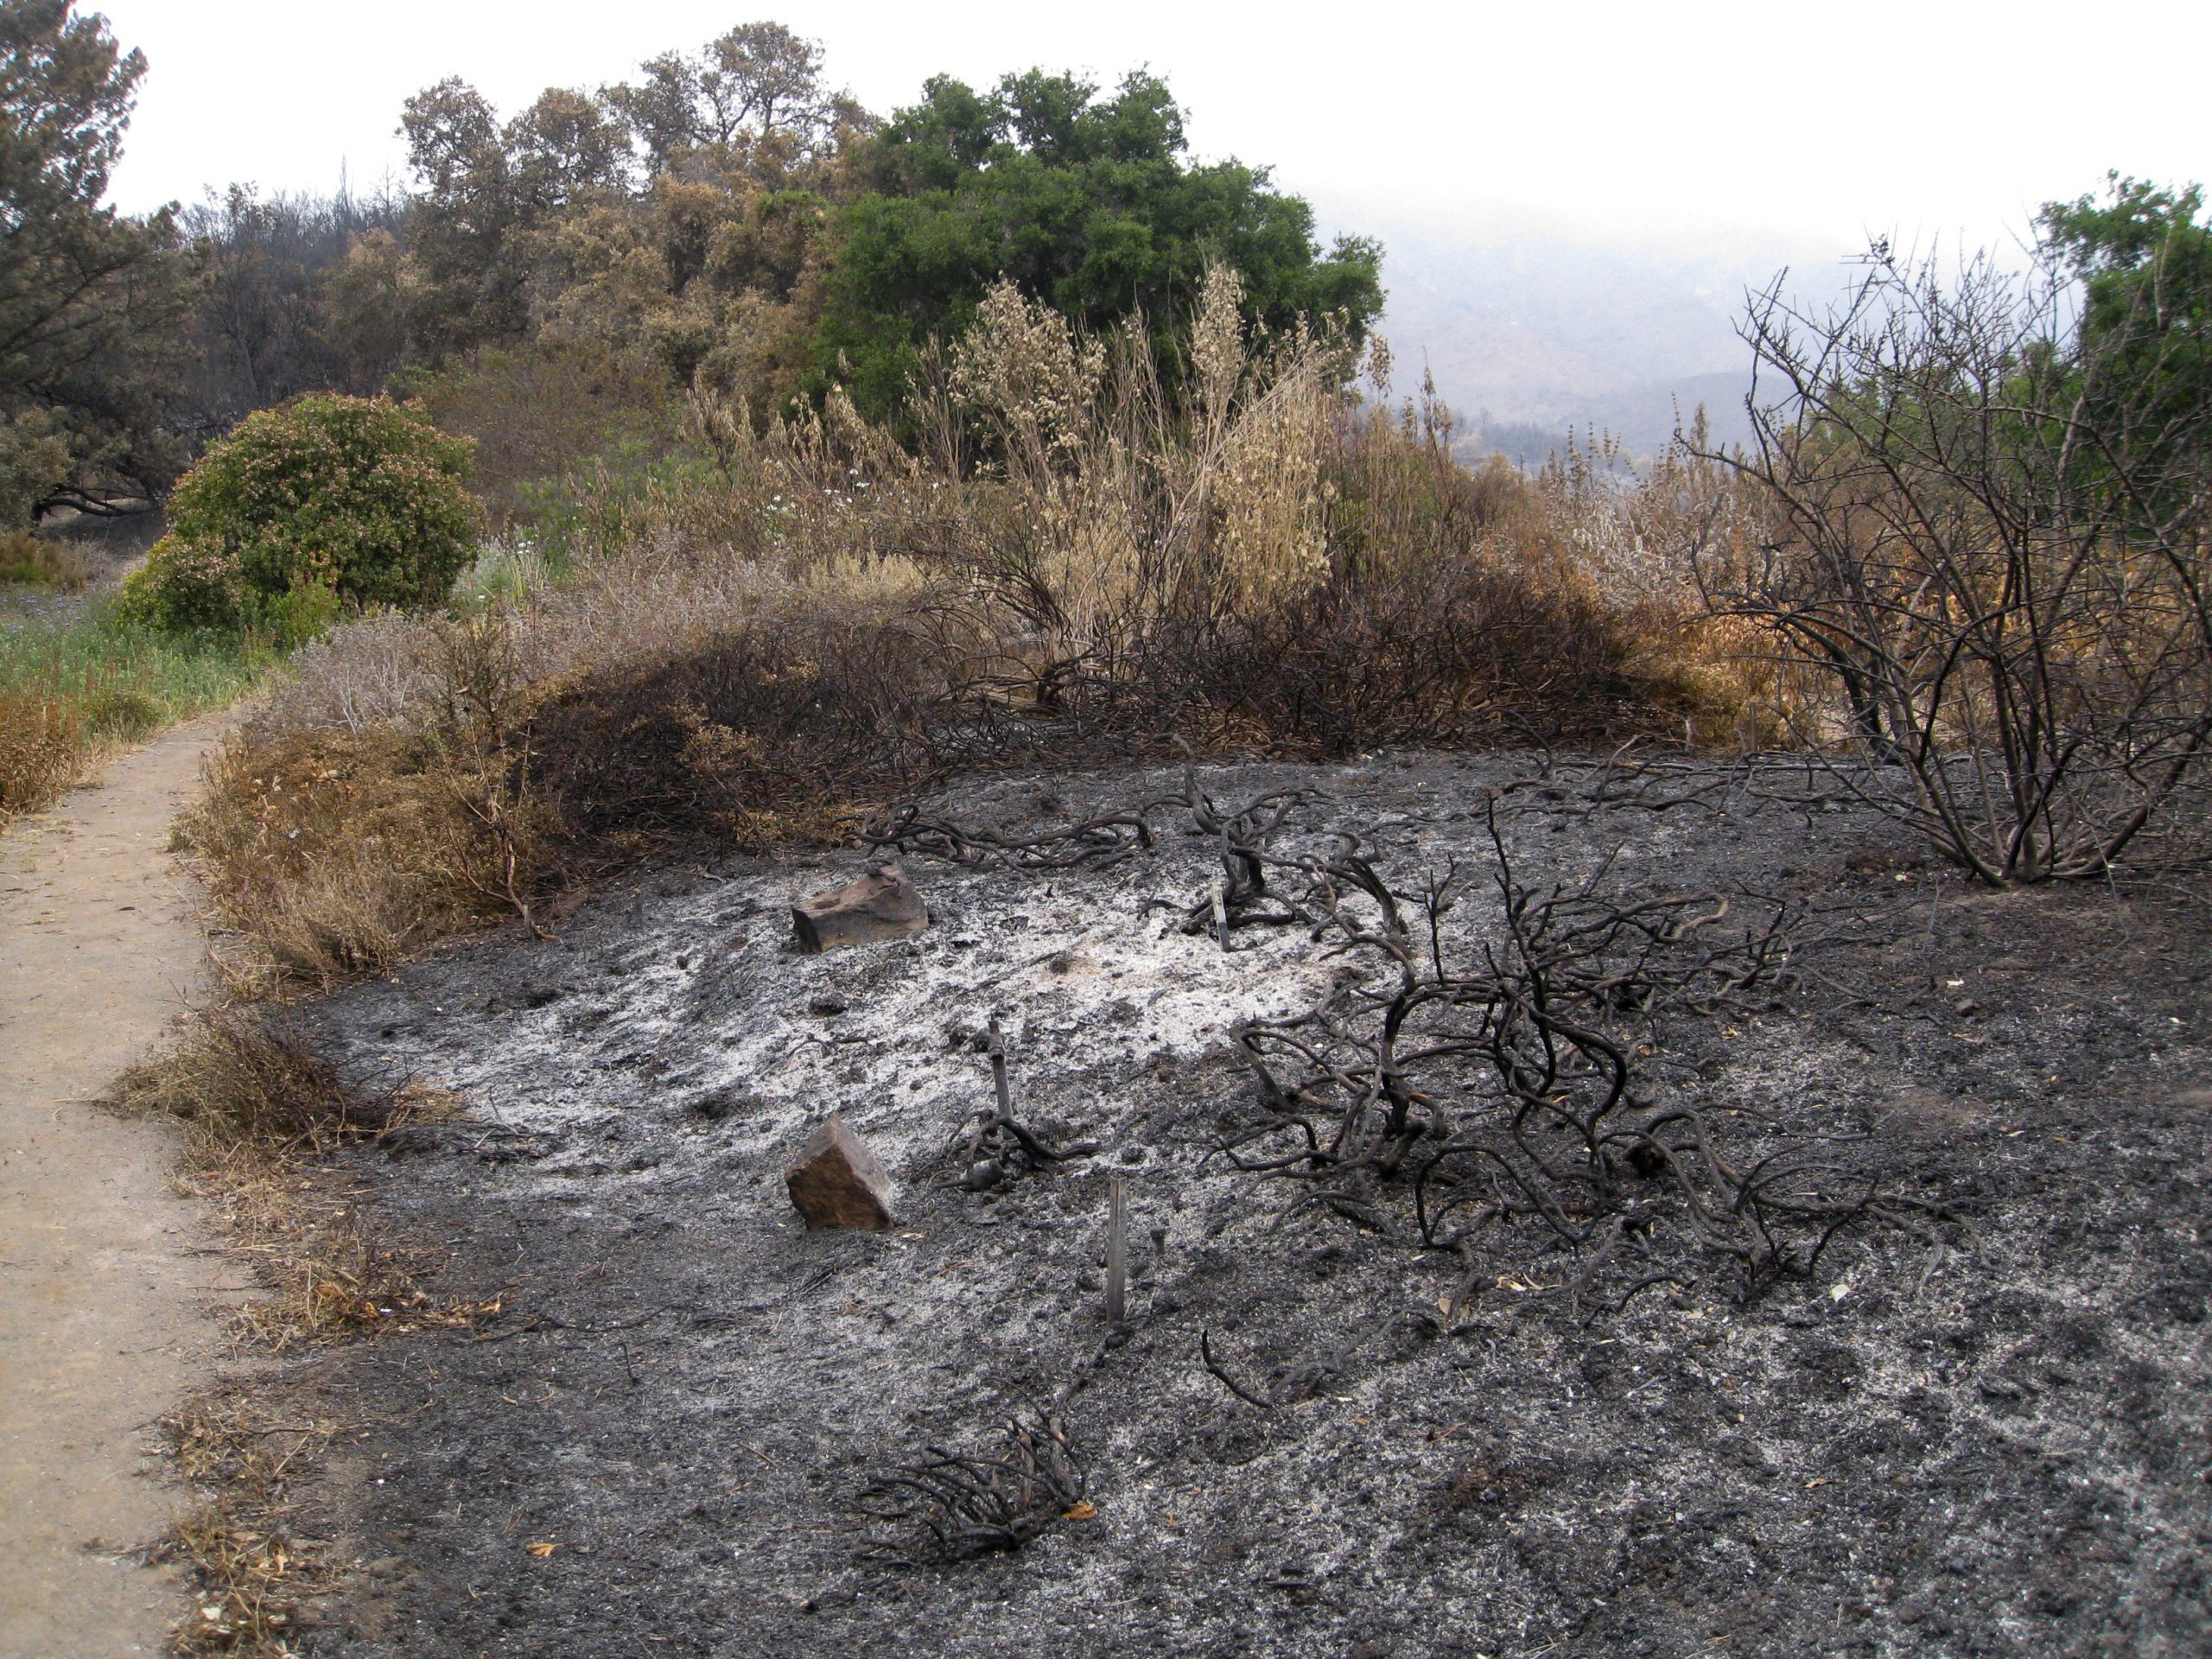 Much of the Porter Trail was reduced to ashes, with the natives there, mainly Ceanothus, pine, cypress and junipers, do not have the ability to re-sprout.